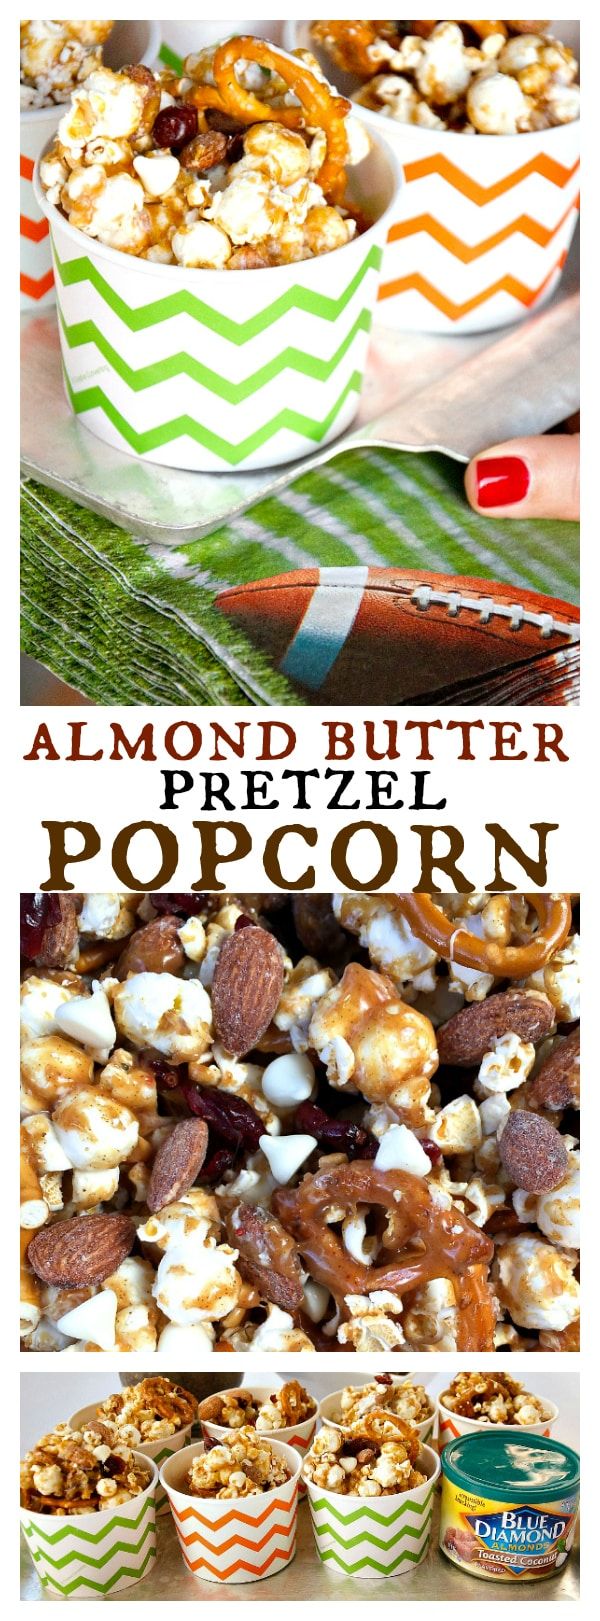 Almond Butter Pretzel Popcorn Snack Cups for Game Day